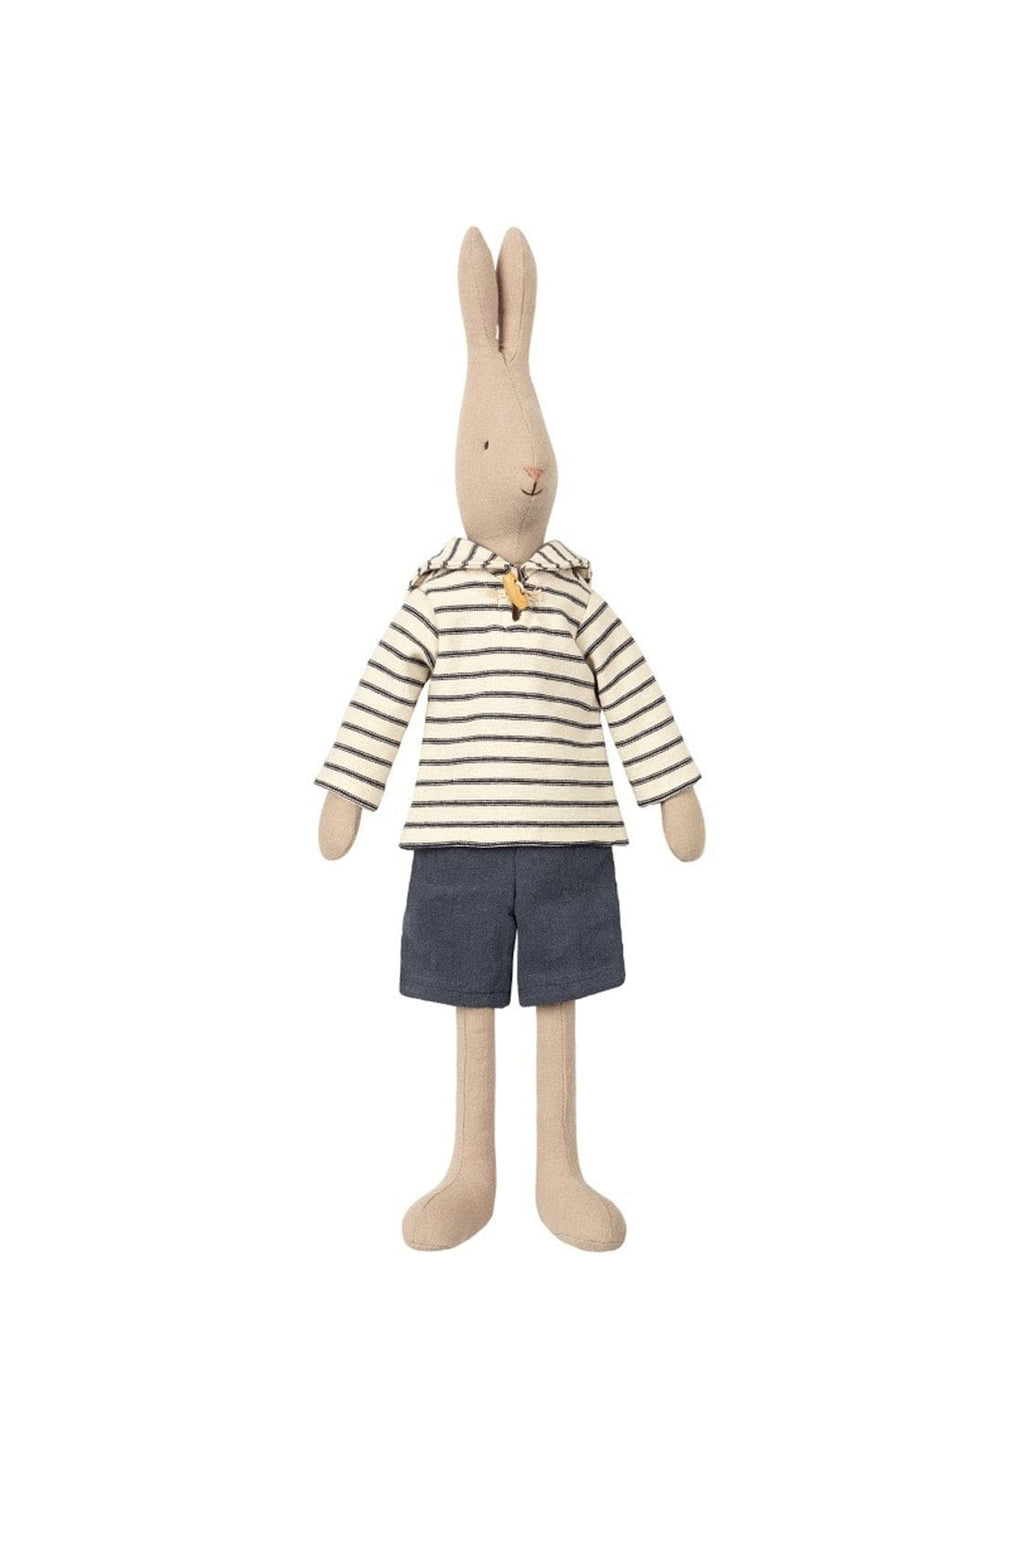 Maileg Rabbit Sailor Off-White 49cm - Hello Little Birdie